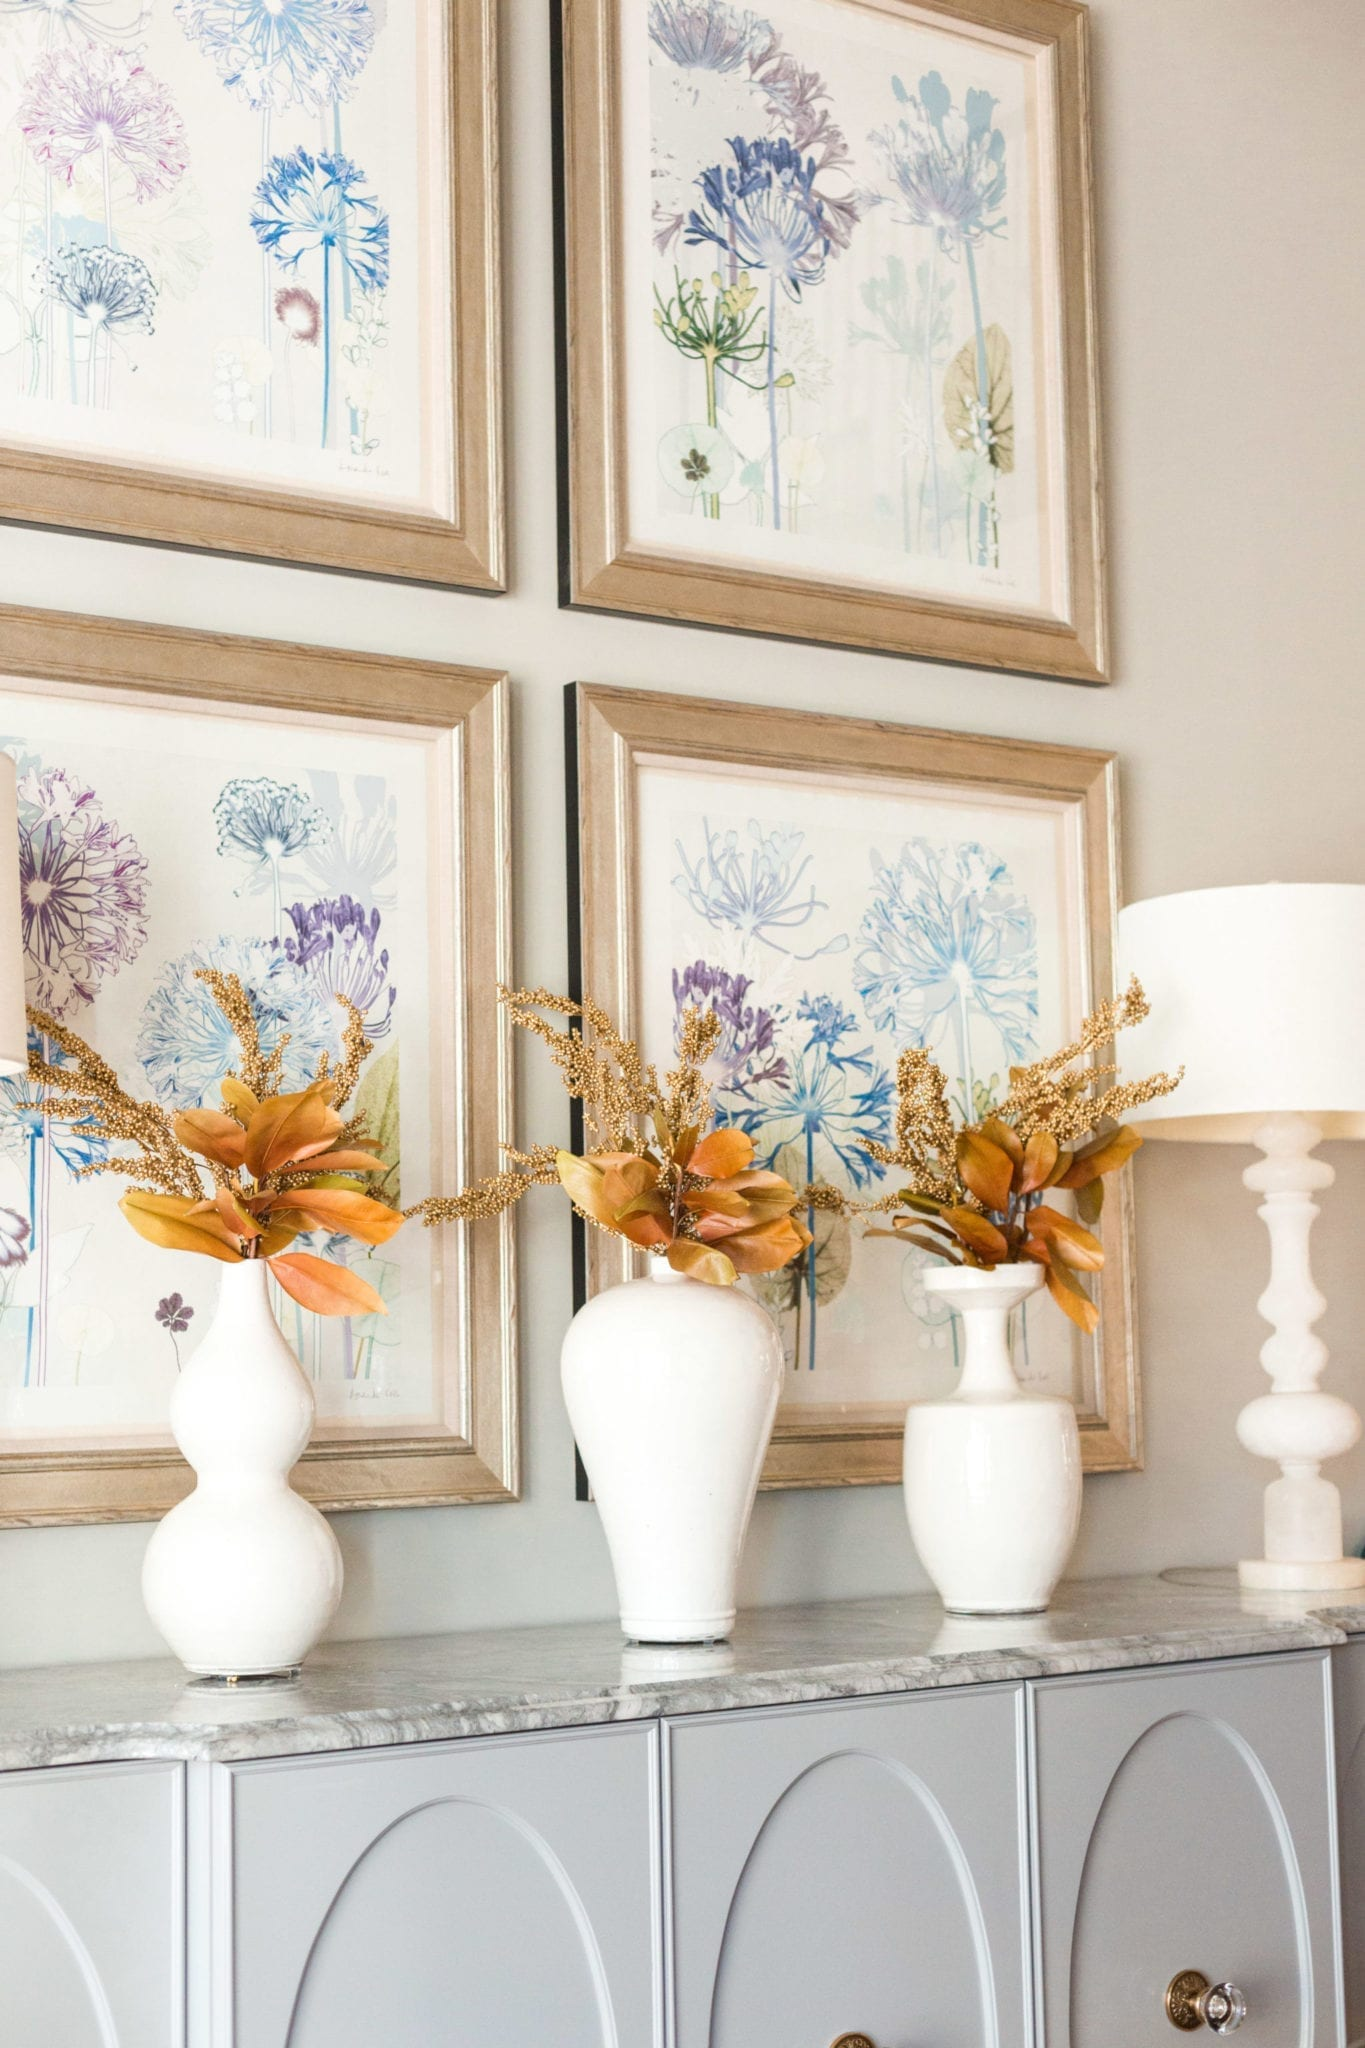 White Frontgate Vases with brown fall leaves.